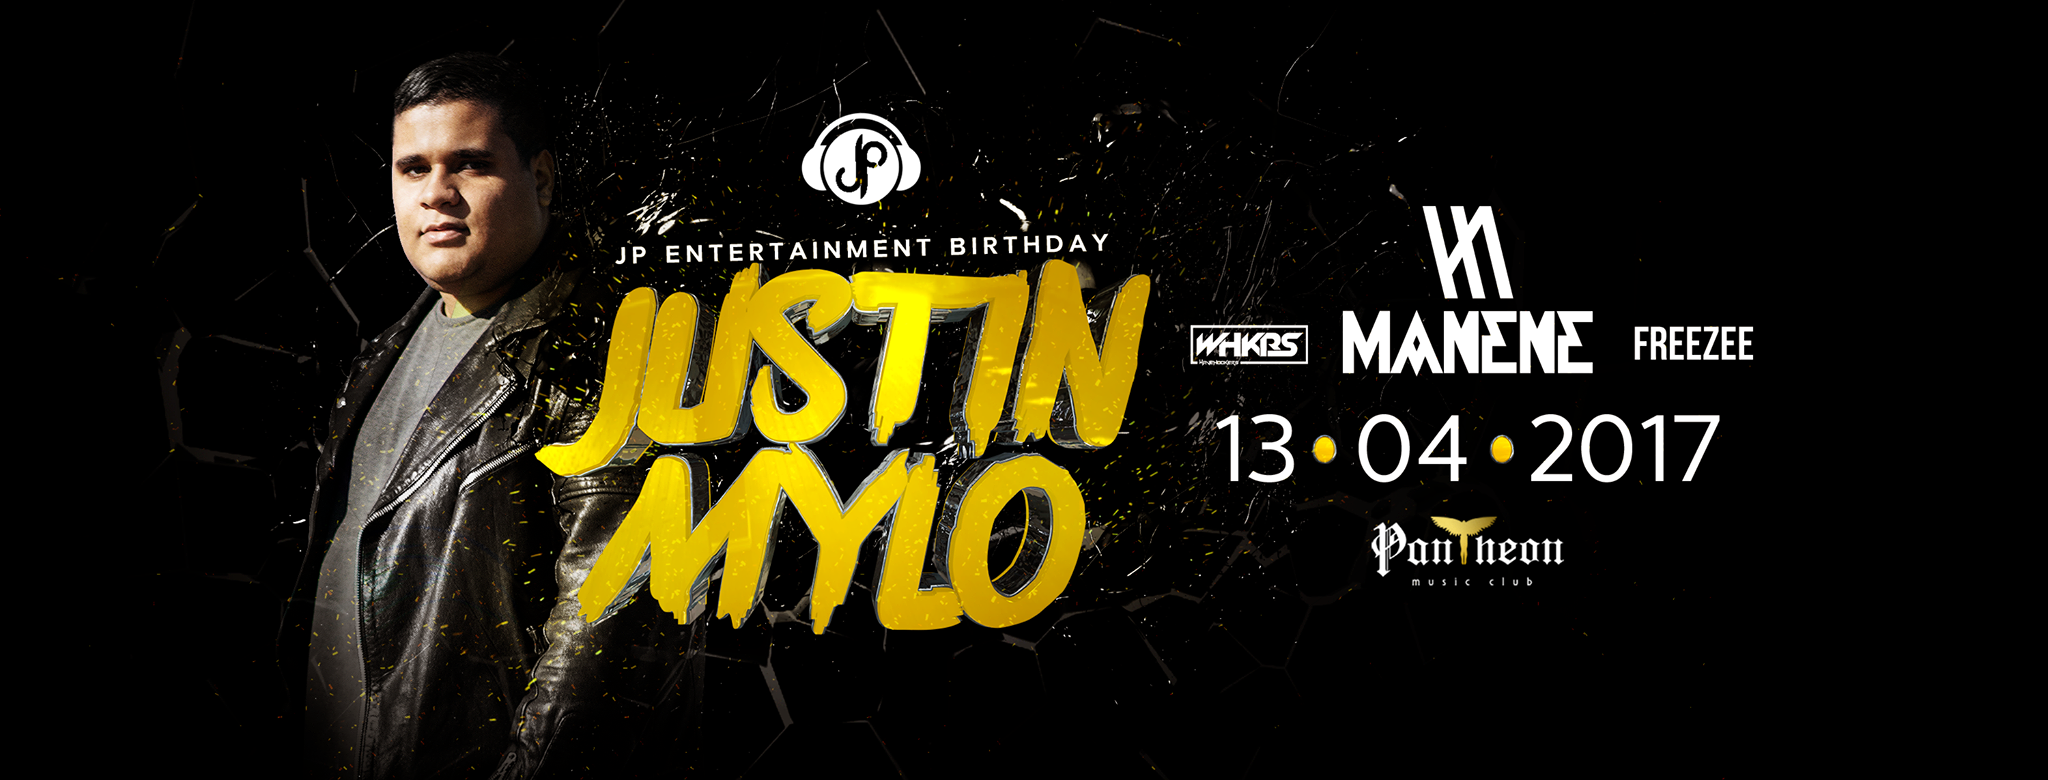 Justin Mylo & 2nd B-Day JP Entertainment